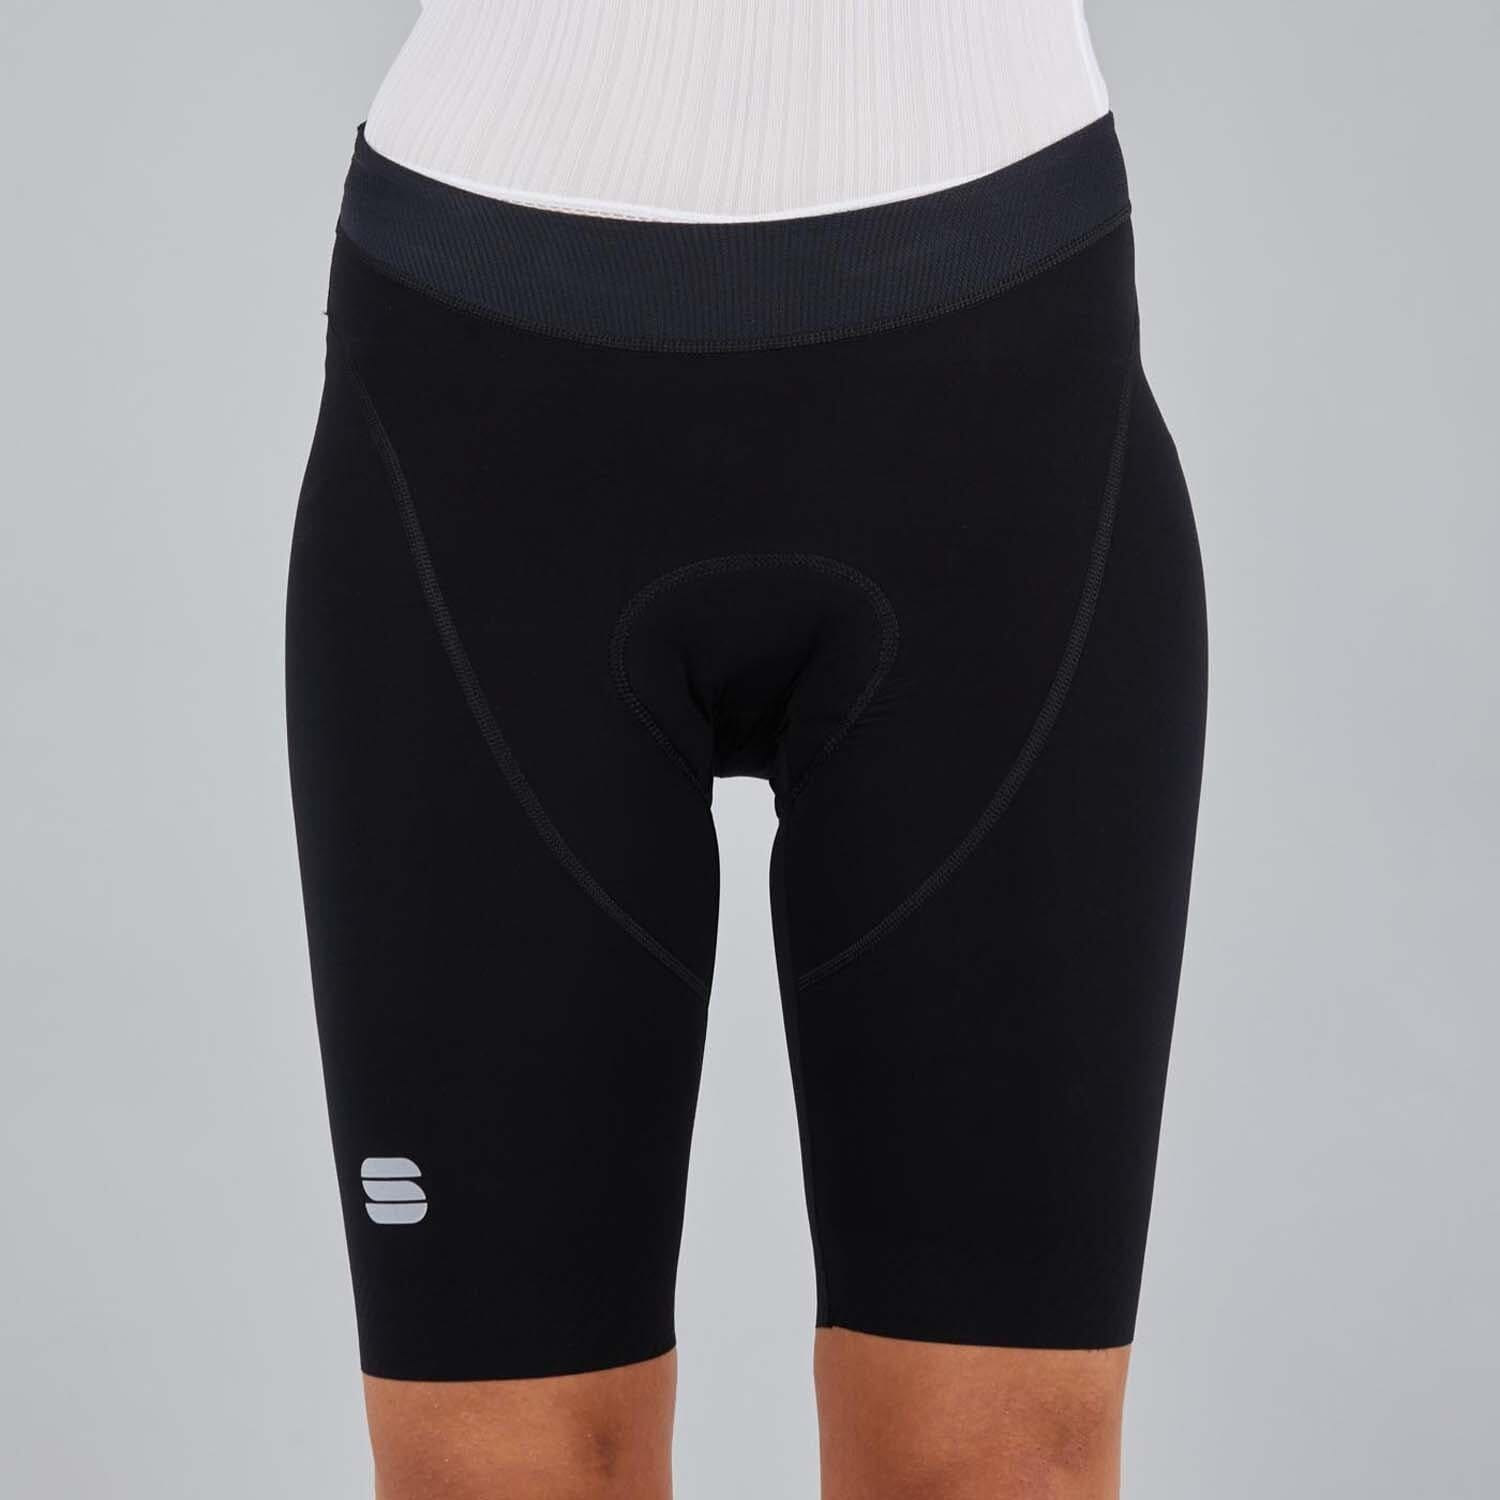 Sportful-Sportful Total Comfort Women's Shorts-Black-XS-SF200390021-saddleback-elite-performance-cycling